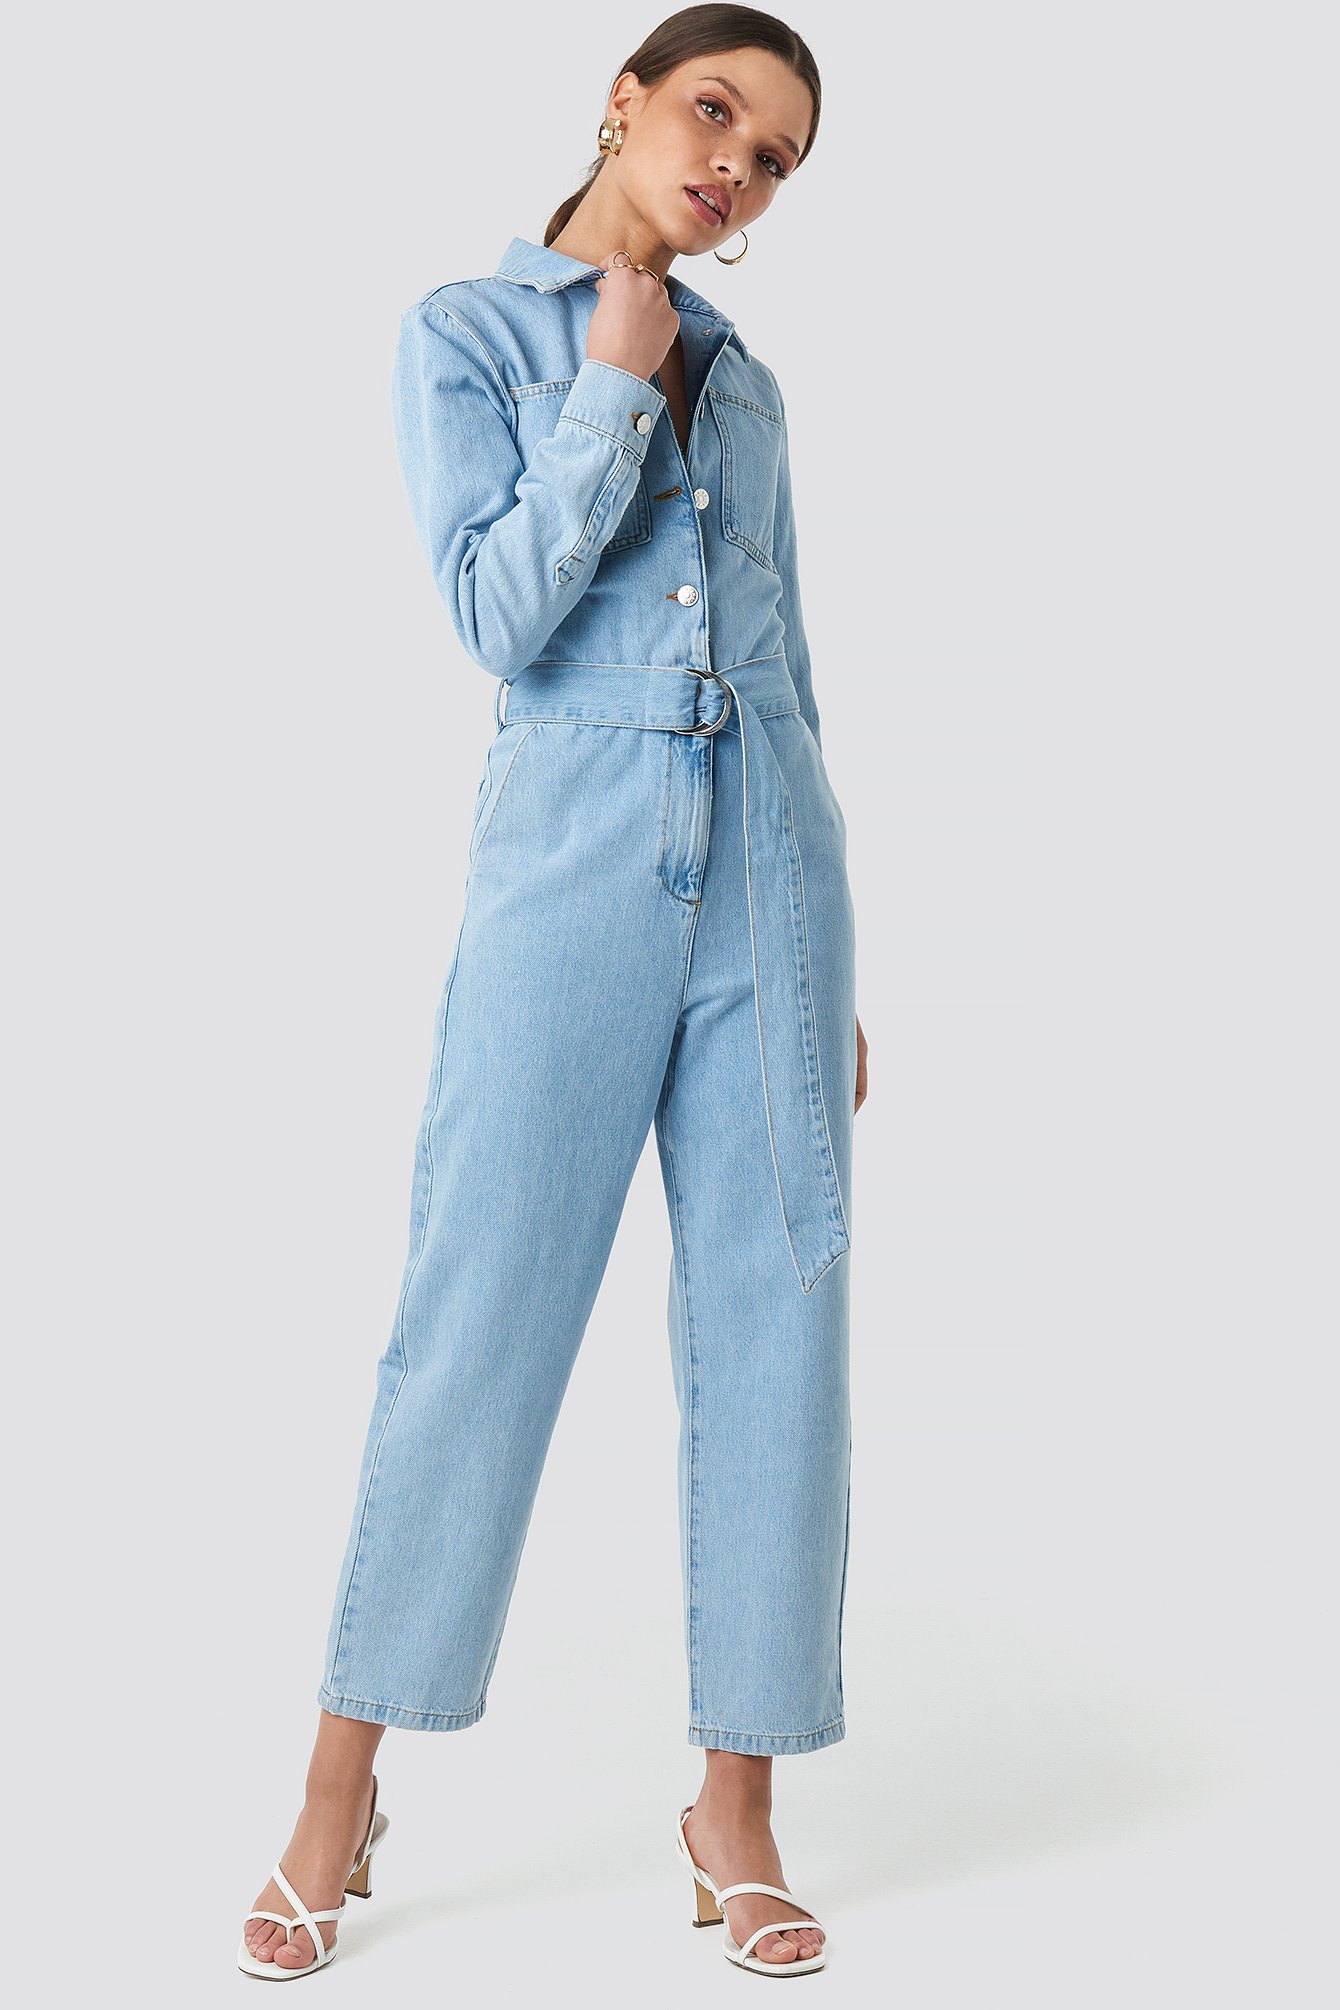 Light Blue Wash Farkku-Jumpsuit Vyöllä